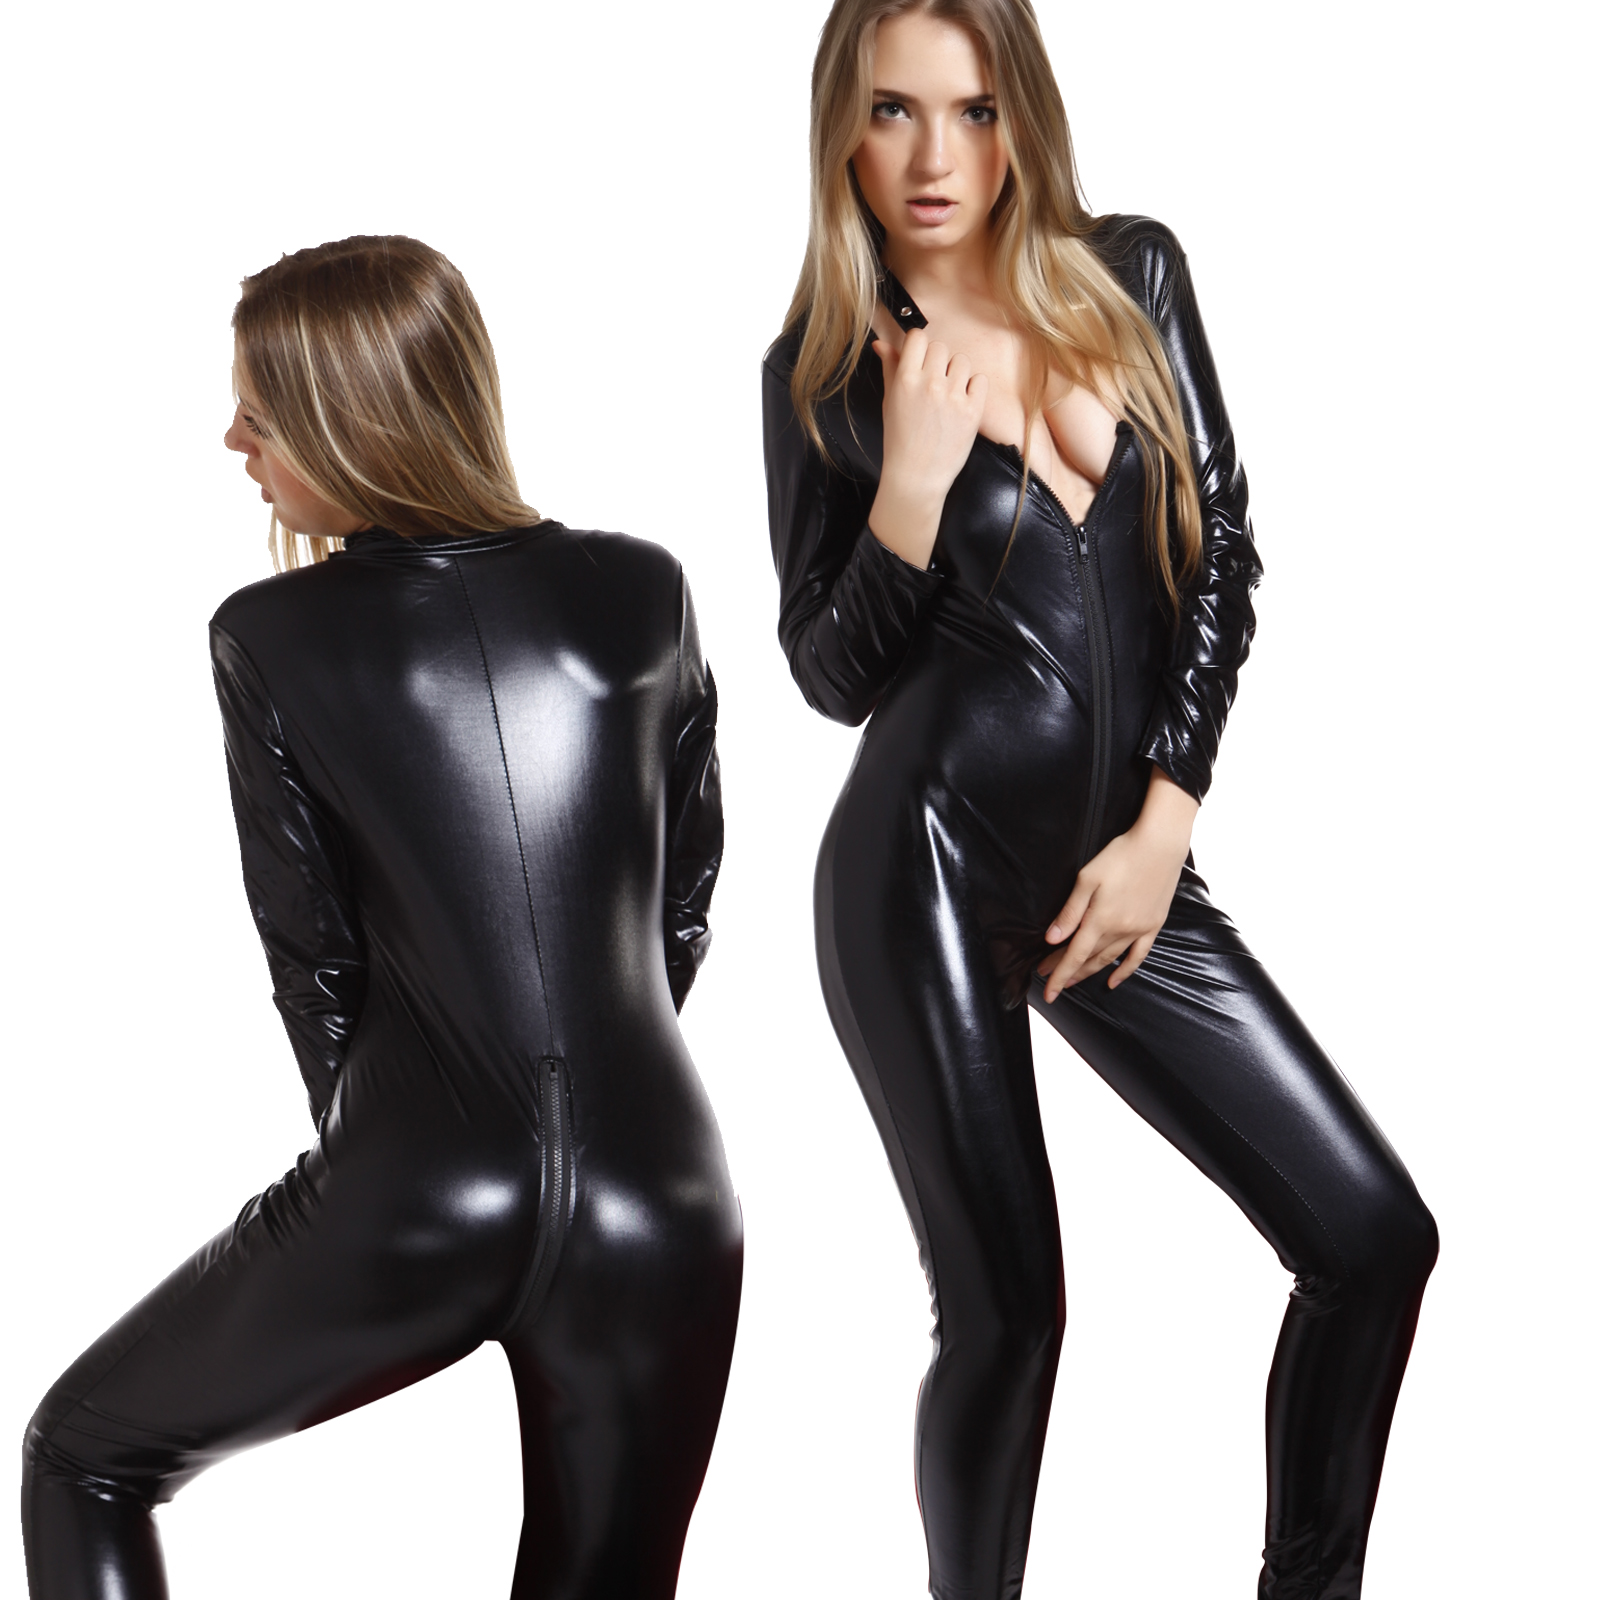 The Deep V Vinyl Catsuit is the top of fetish fashion. You will feel sexy in this PVC Catsuit. The Deep V Vinyl Catsuit and a silver front zipper for easy in and out and to contrast the shiny patent leather.